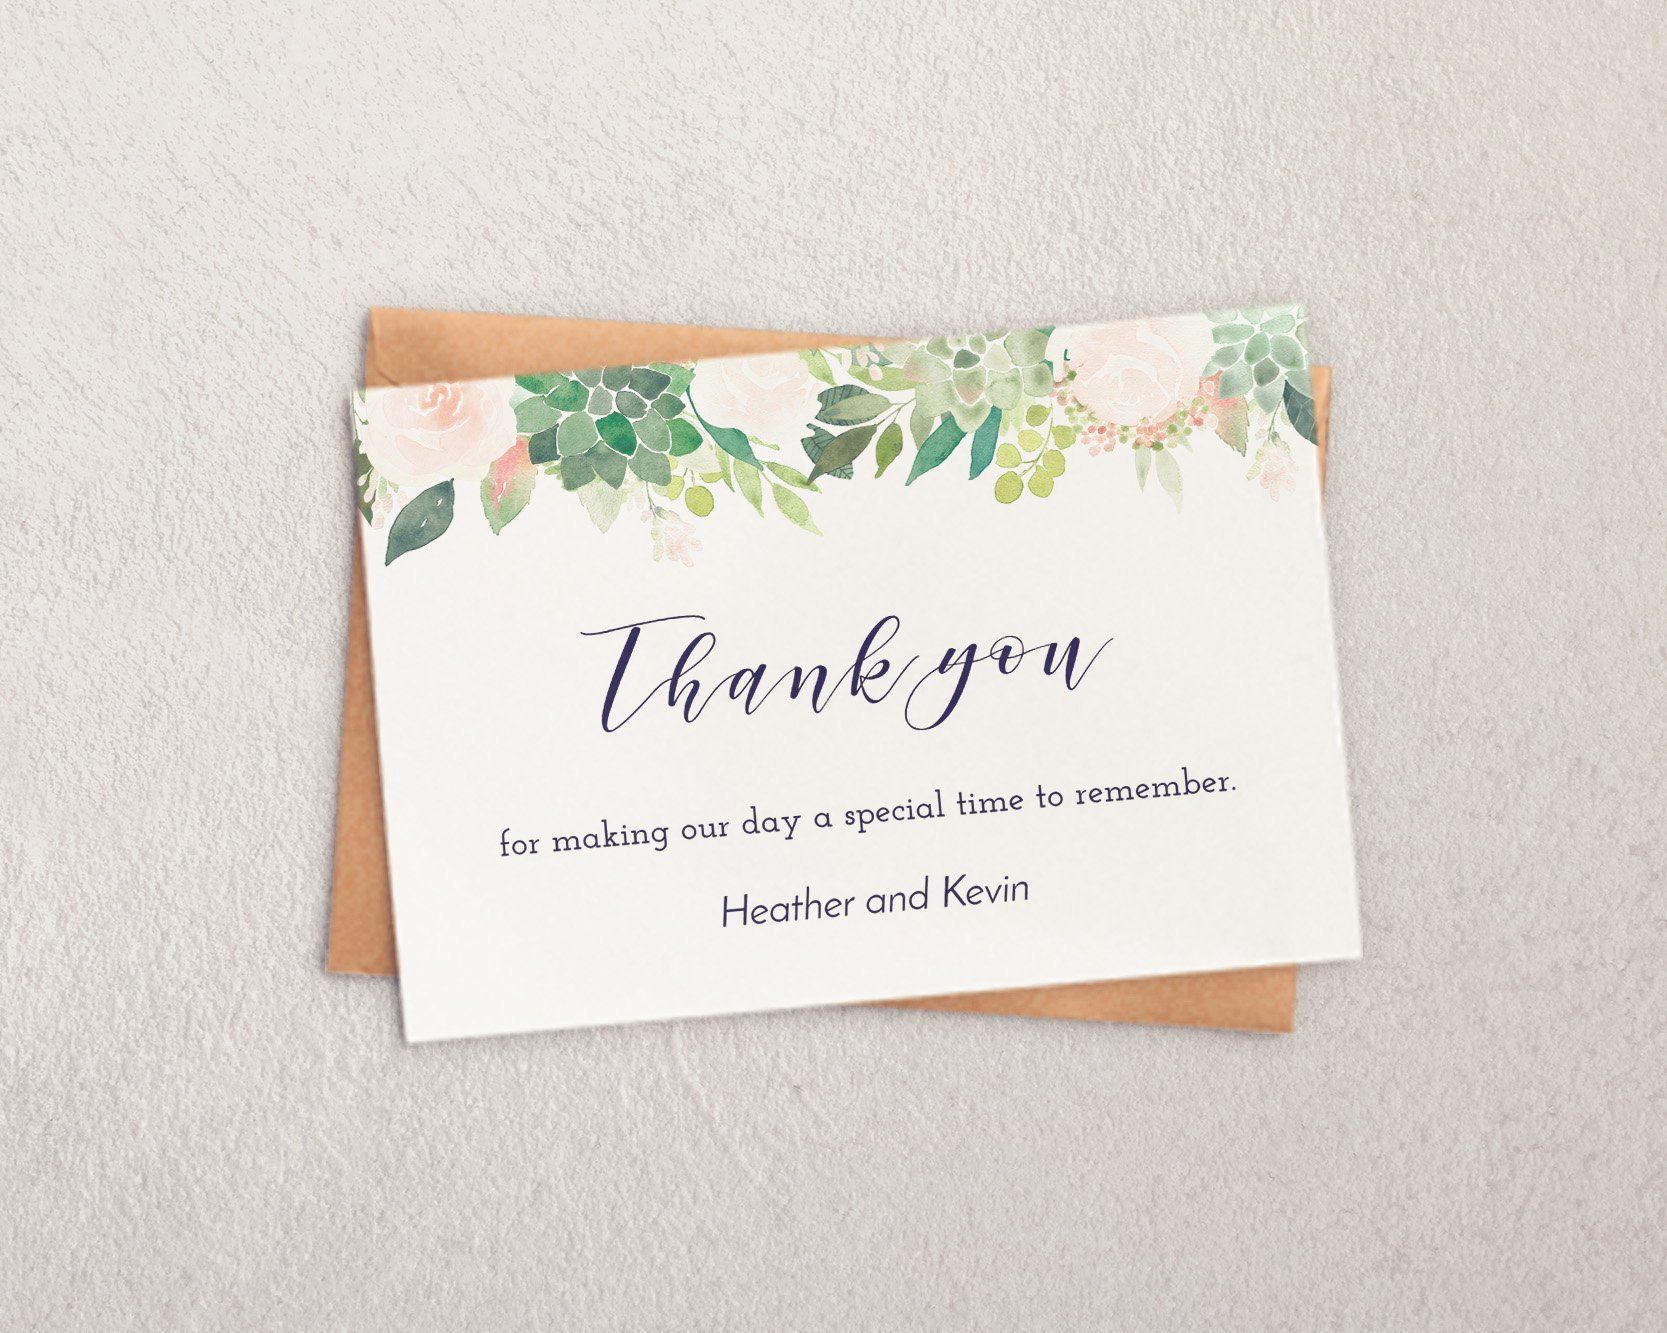 003 Imposing Thank You Note Template Wedding Shower Highest Clarity  Bridal Card Sample WordingFull